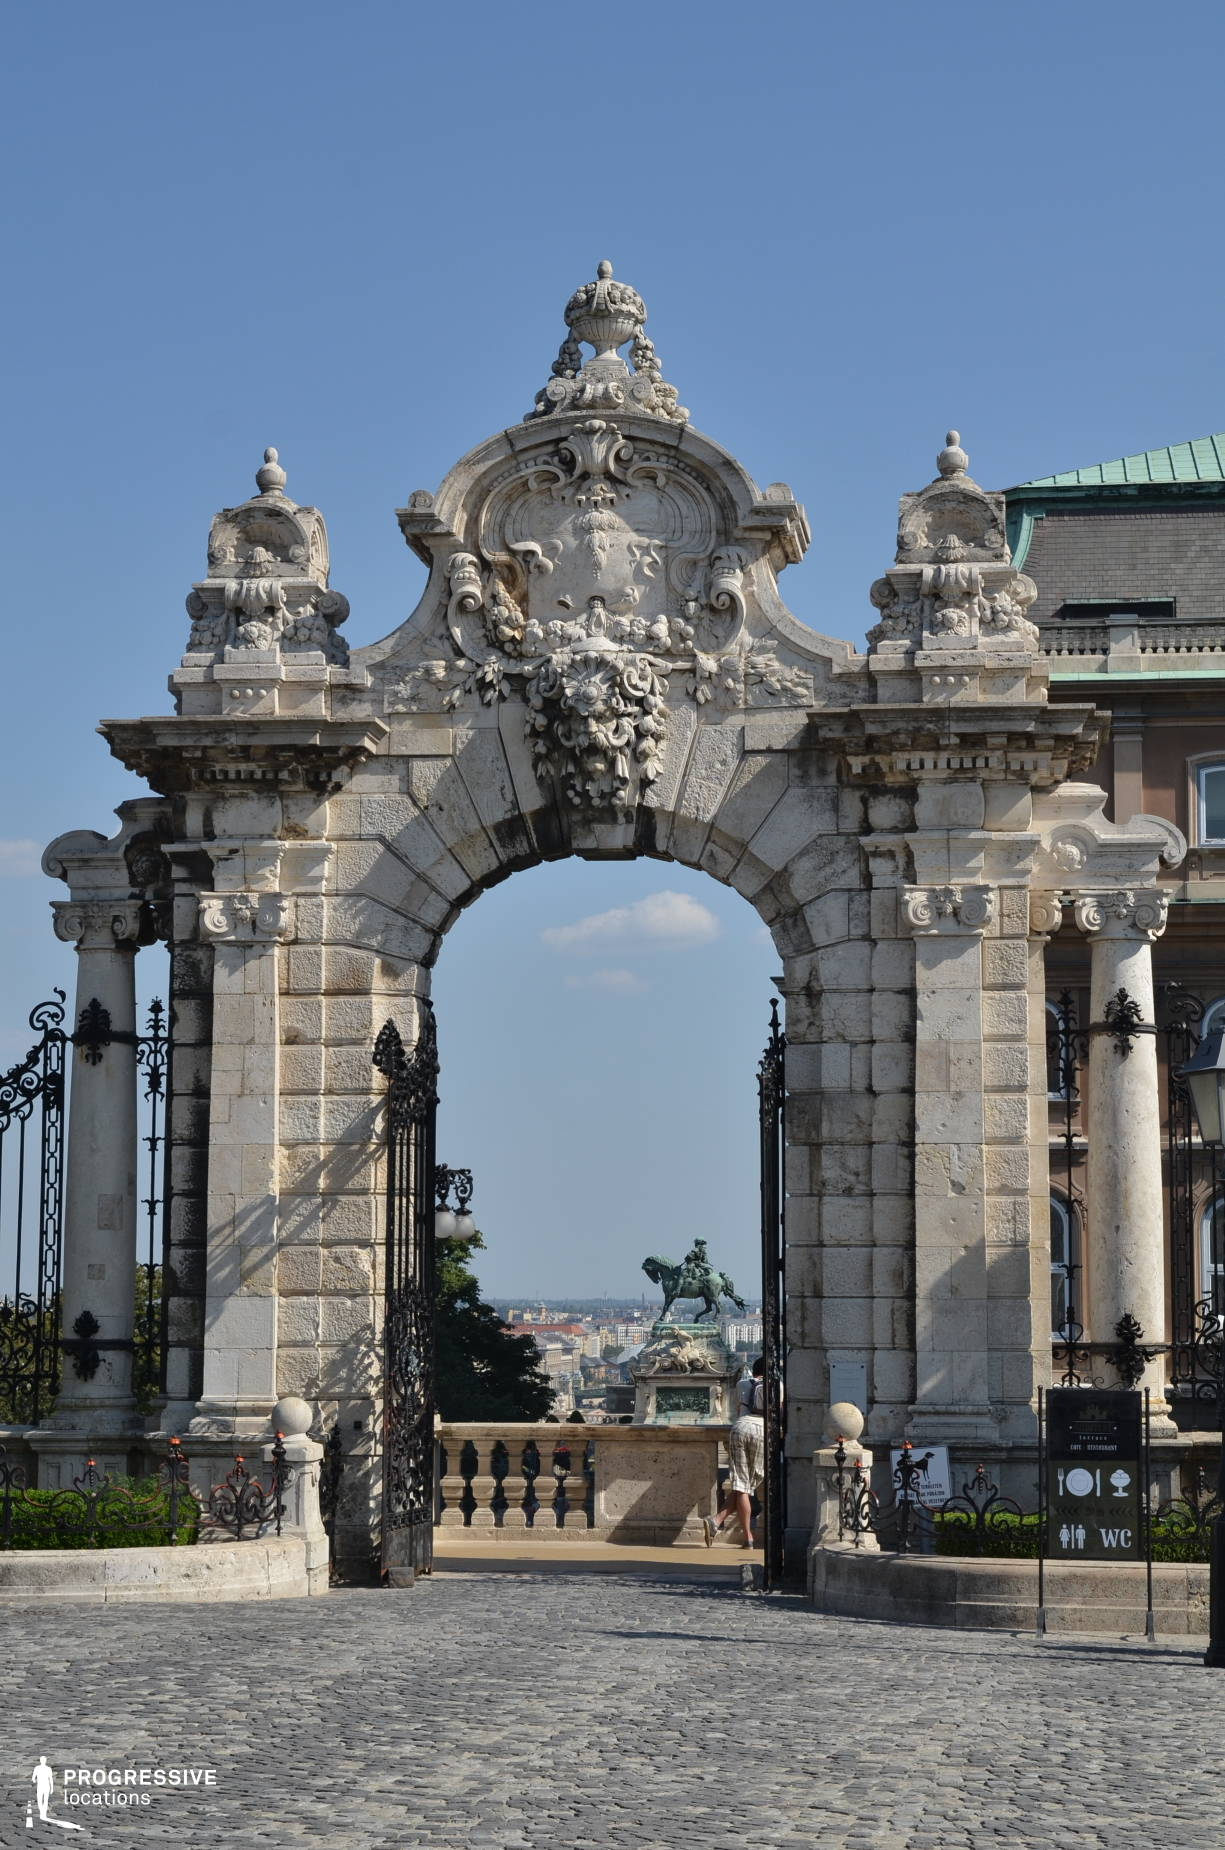 Locations in Hungary: Buda Castle, Turul Gate